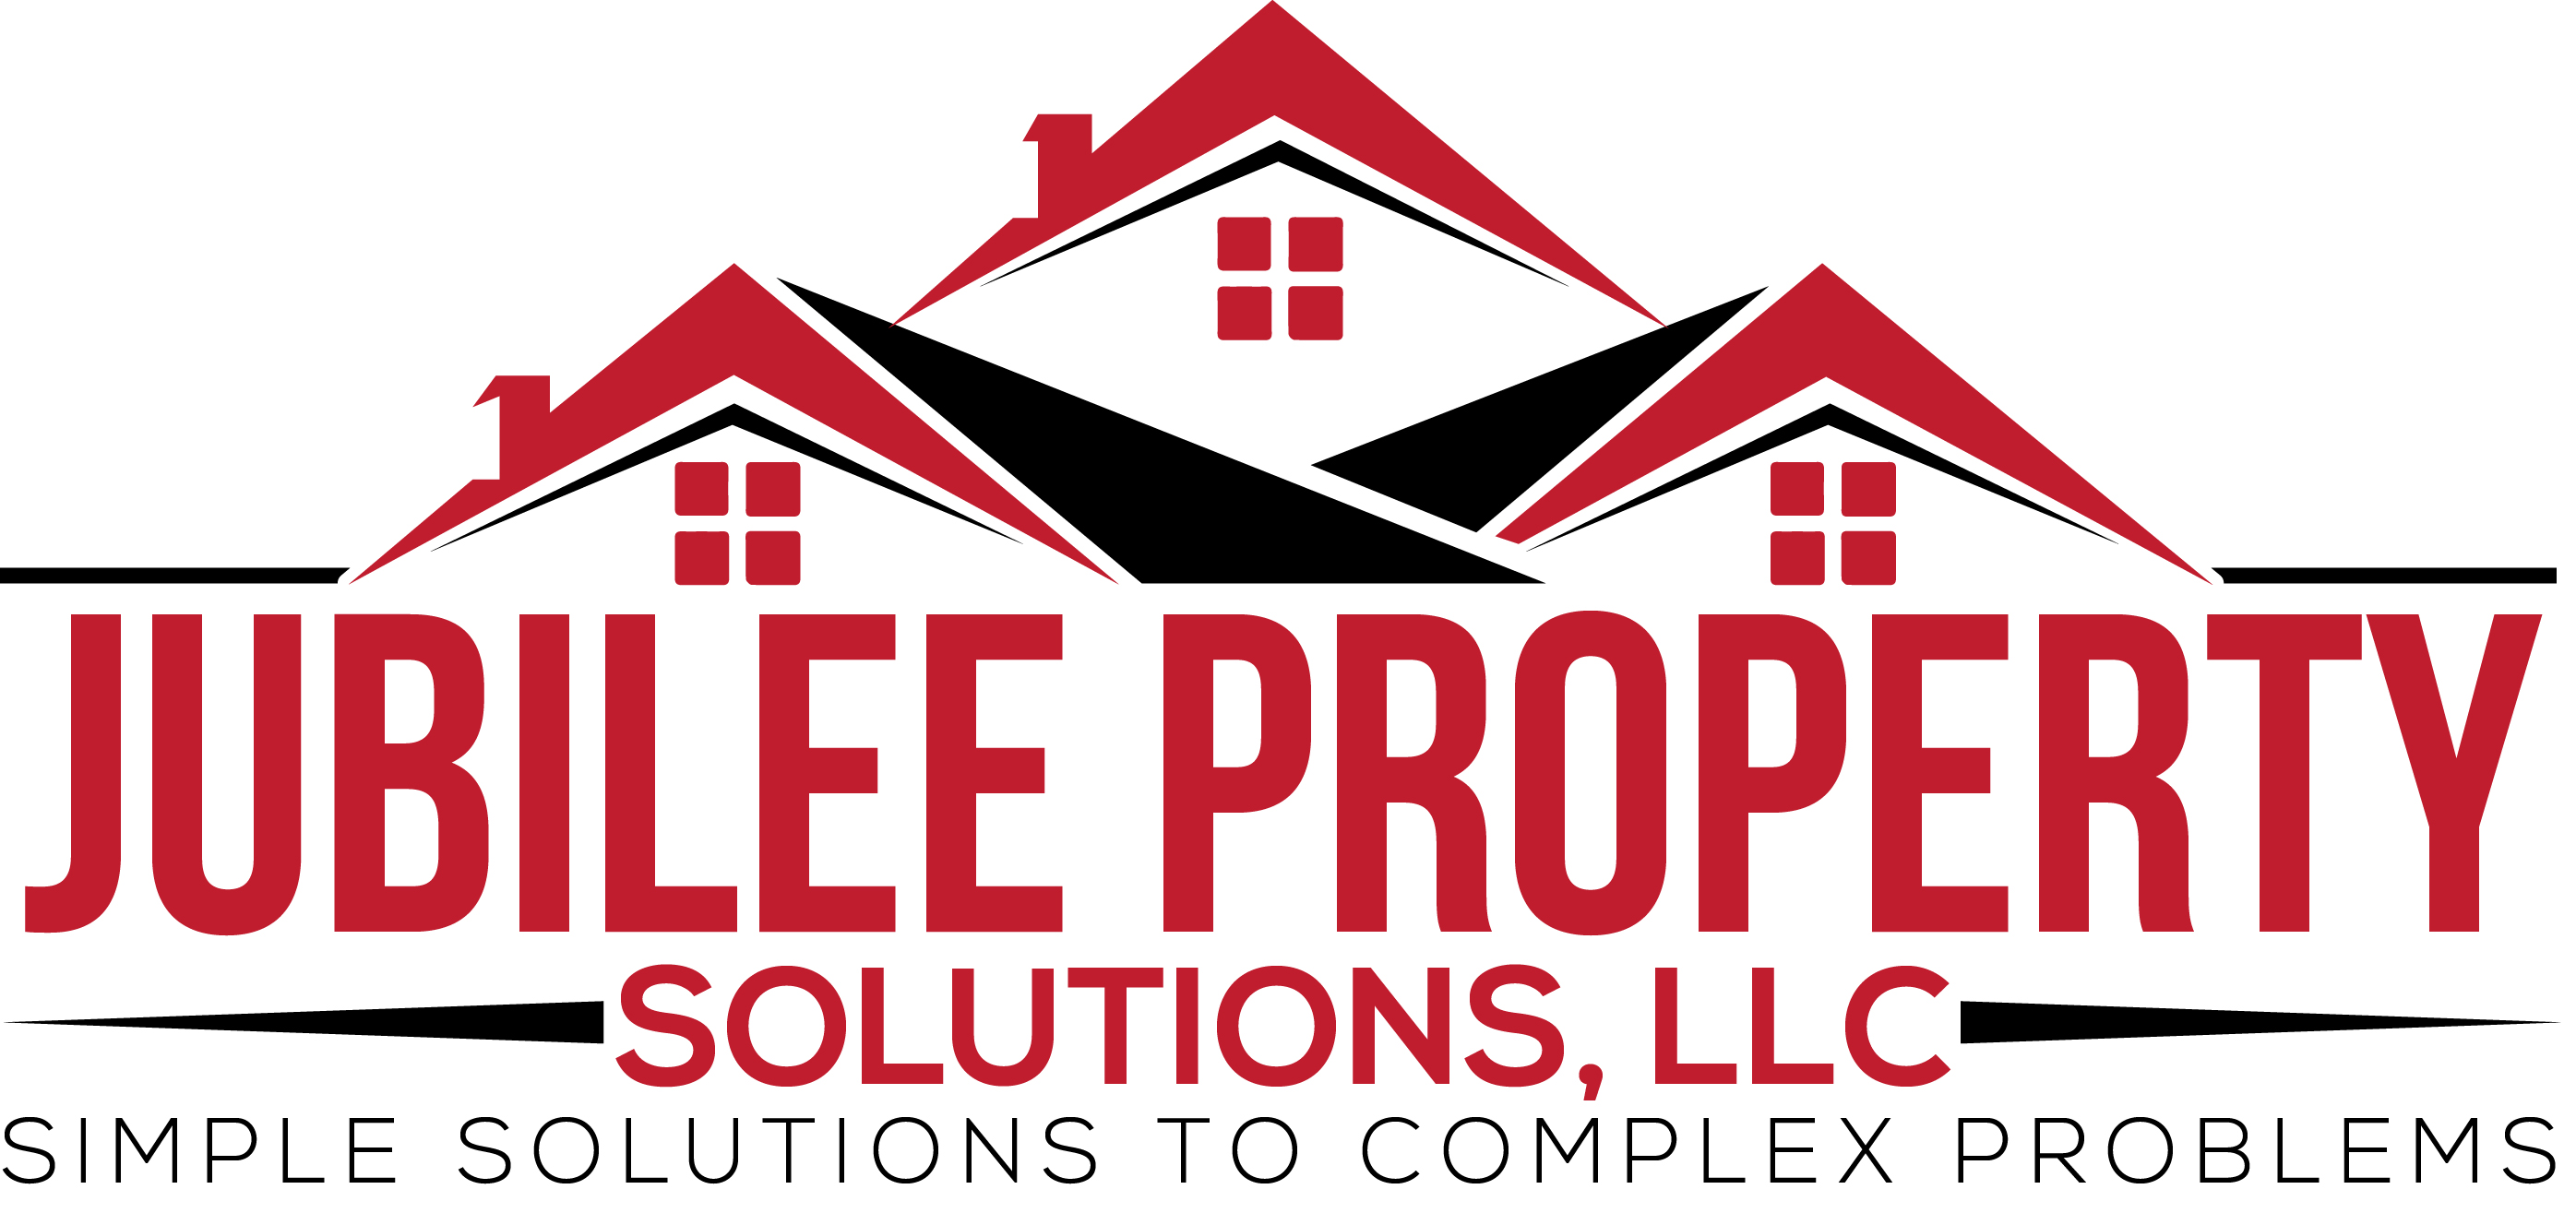 Jubilee Property Solutions, LLC